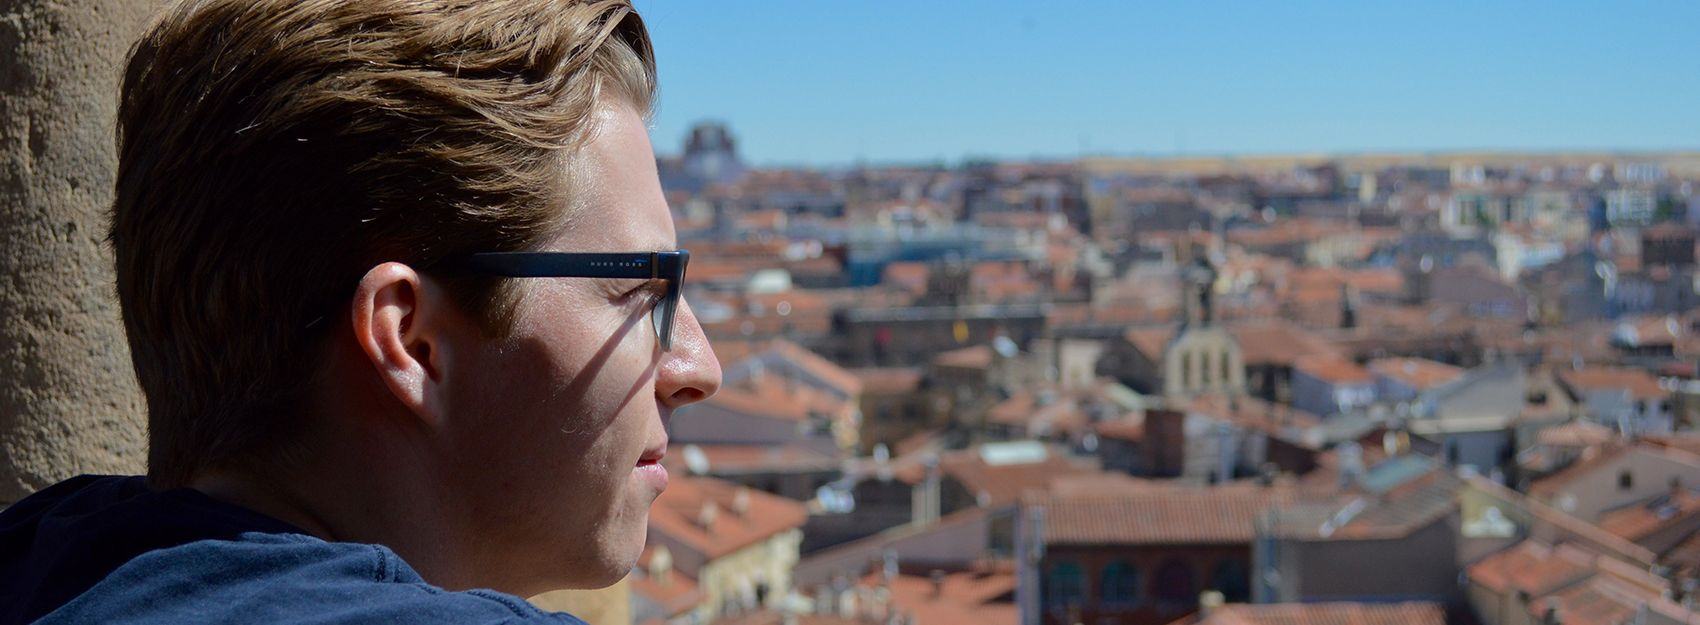 Student above the city in Spain